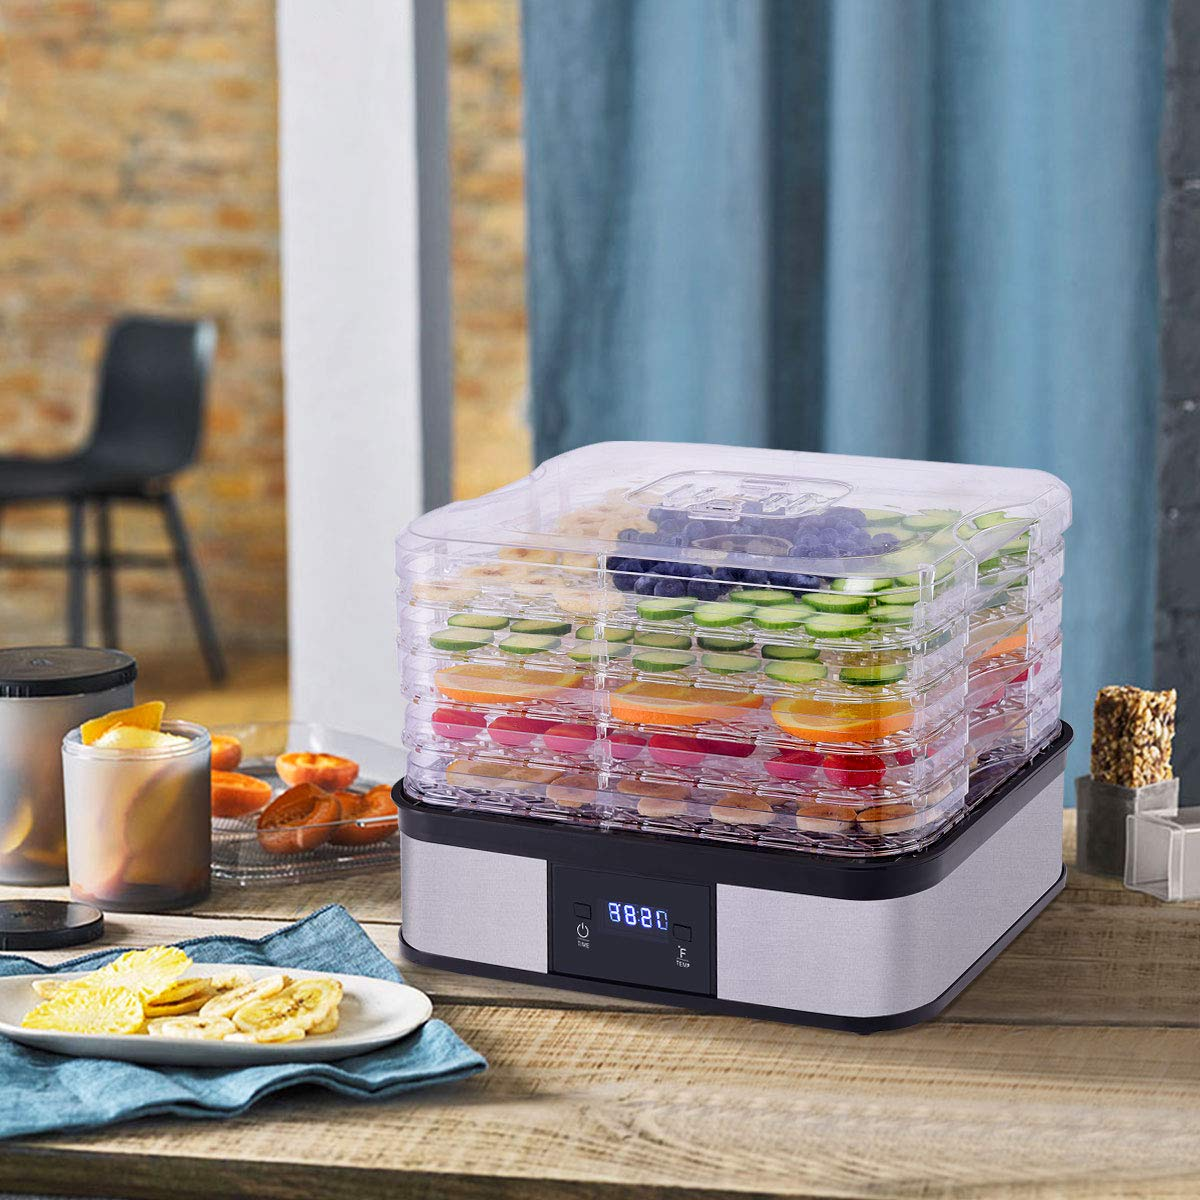 HAPPYGRILL Food Dehydrator Machine, Best Electric 5-Tier Home Food Meat Beef Jerky Fruit Vegetable Dehydrator Dryer Preserver, Professional 360 Degree Hot Air Circulation System, Easy to Clean(Black) by HAPPYGRILL (Image #2)